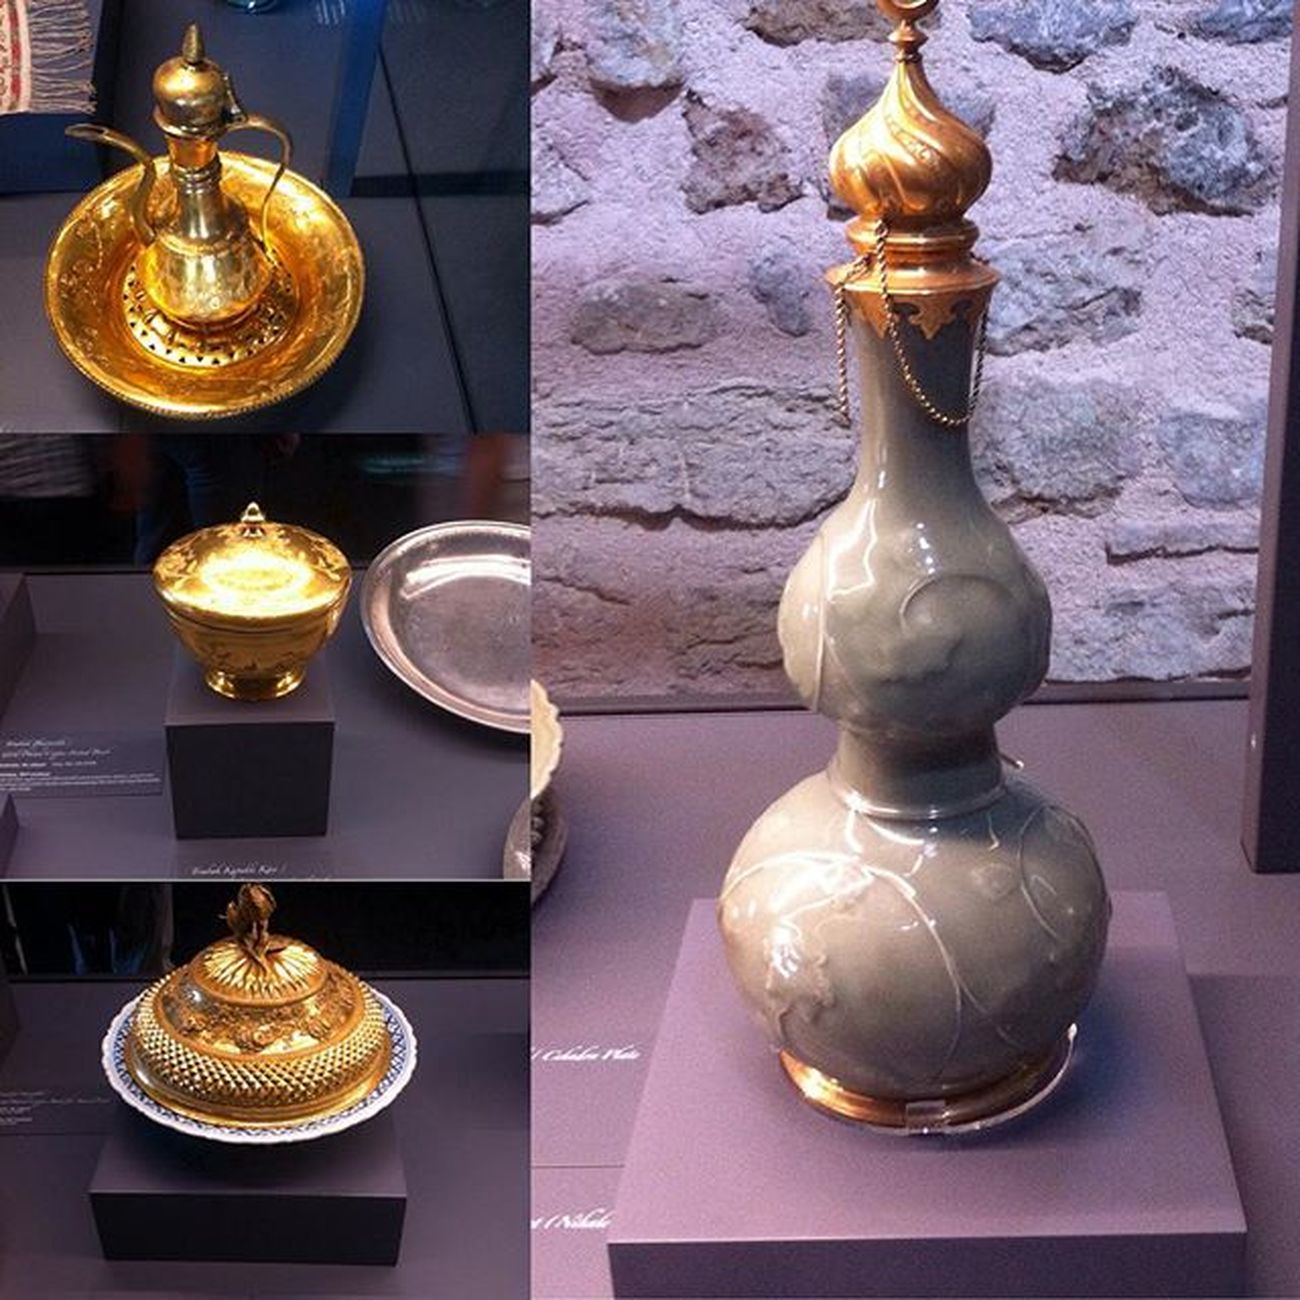 Gold kitchen items from ottomans period 14th century Museum Topkapi Gold Porcelain